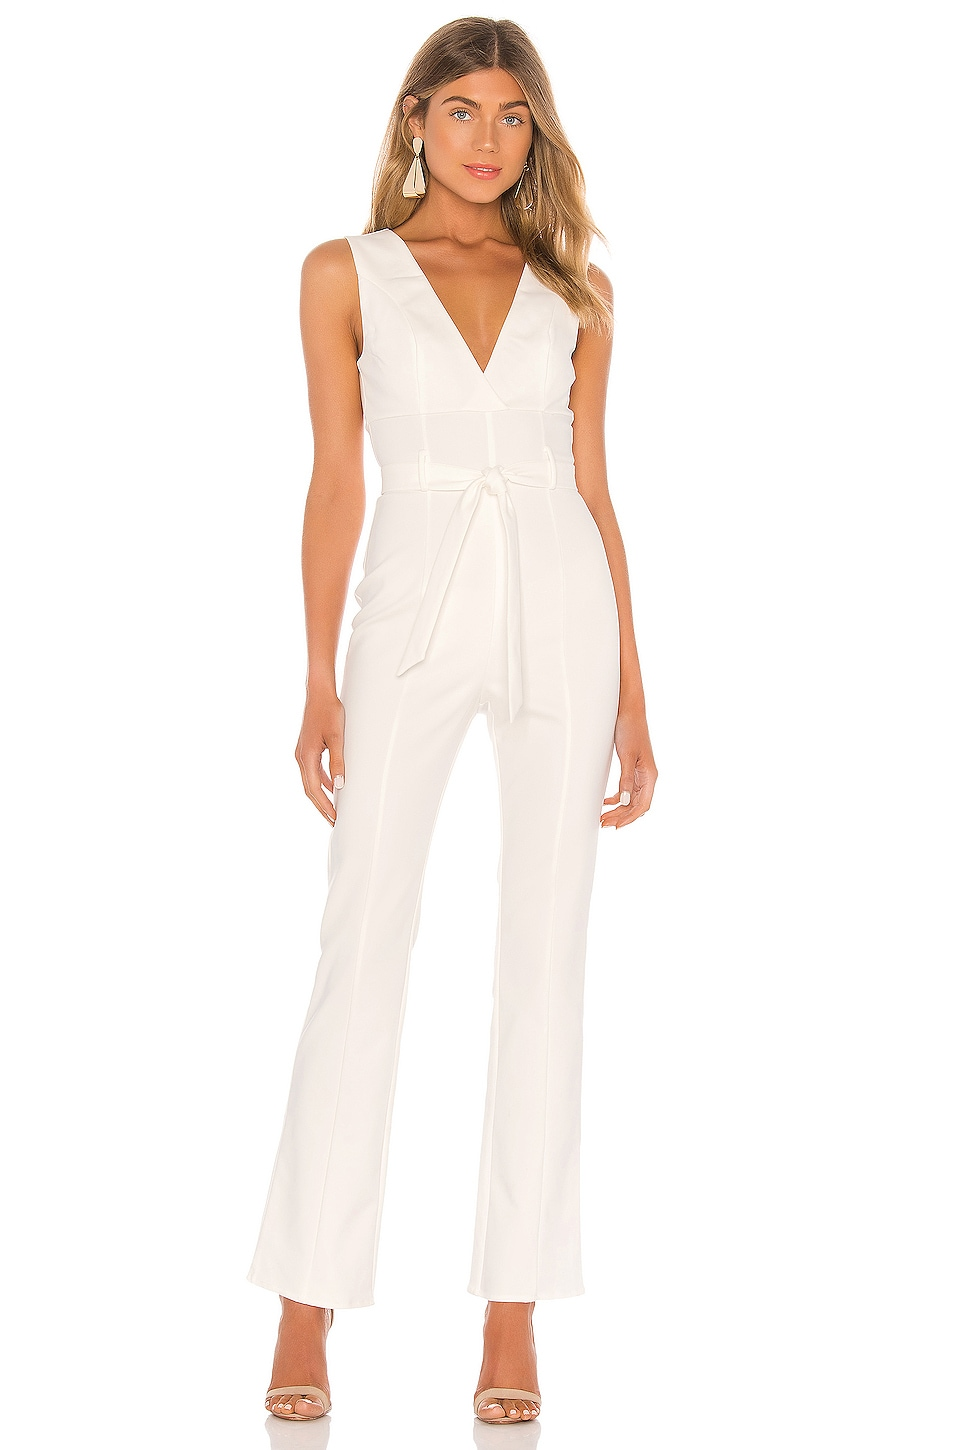 MAJORELLE Chatsworth Jumpsuit in White